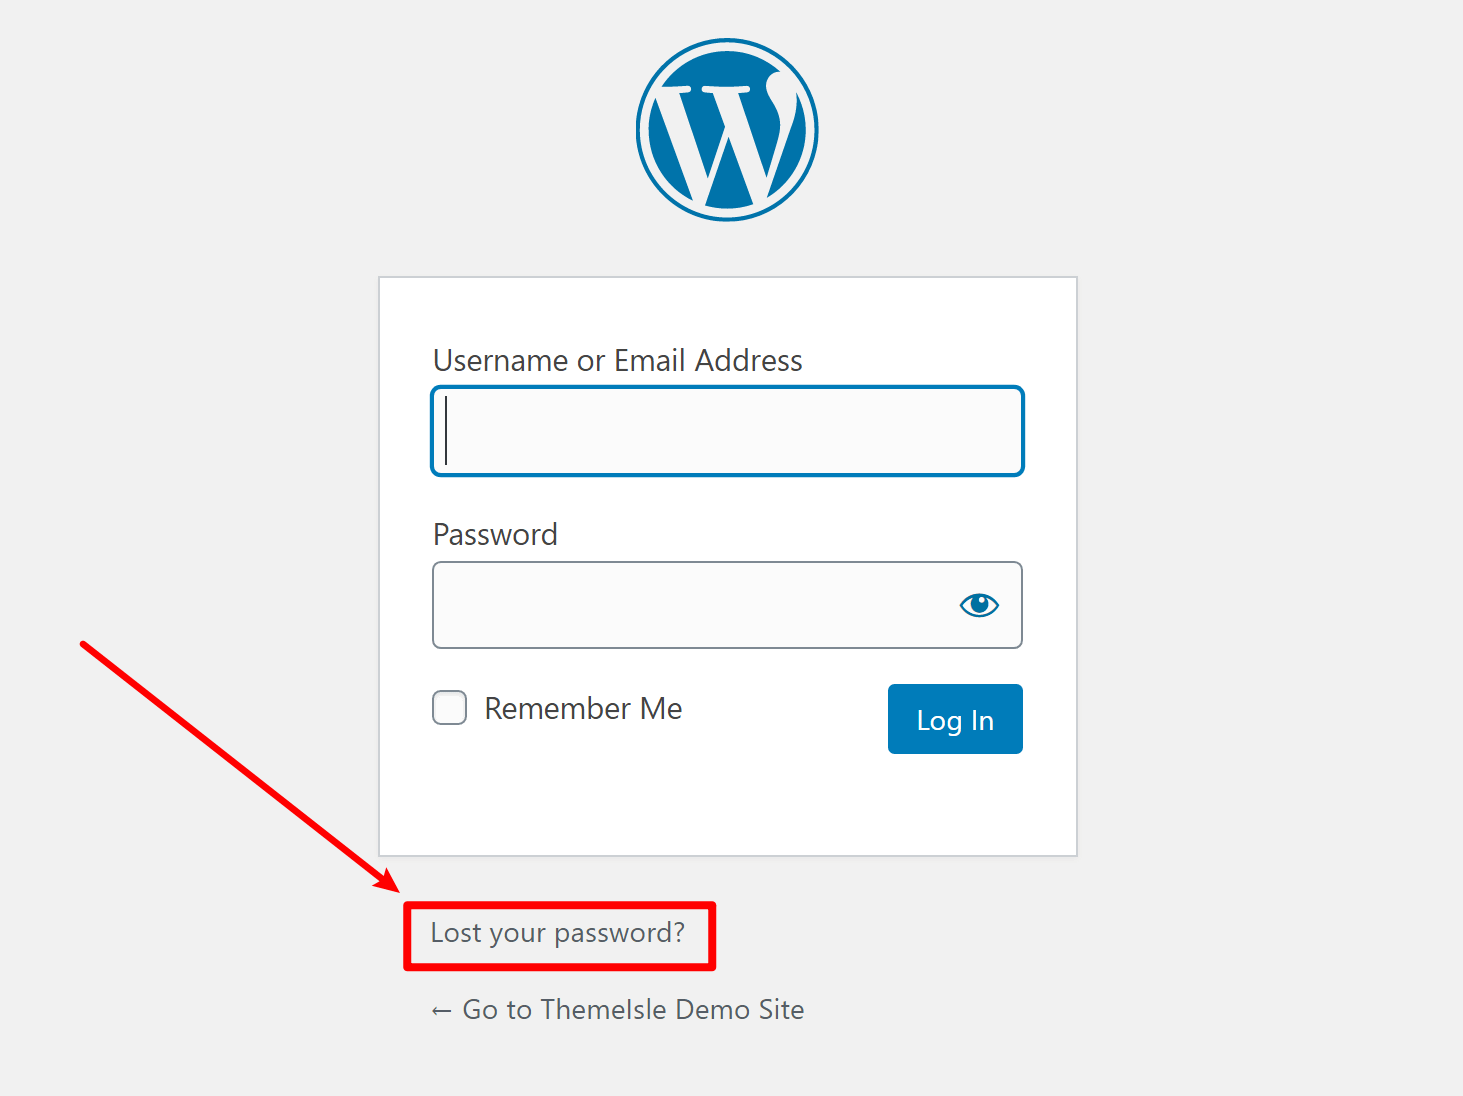 How to use the WordPress password reset feature to change password